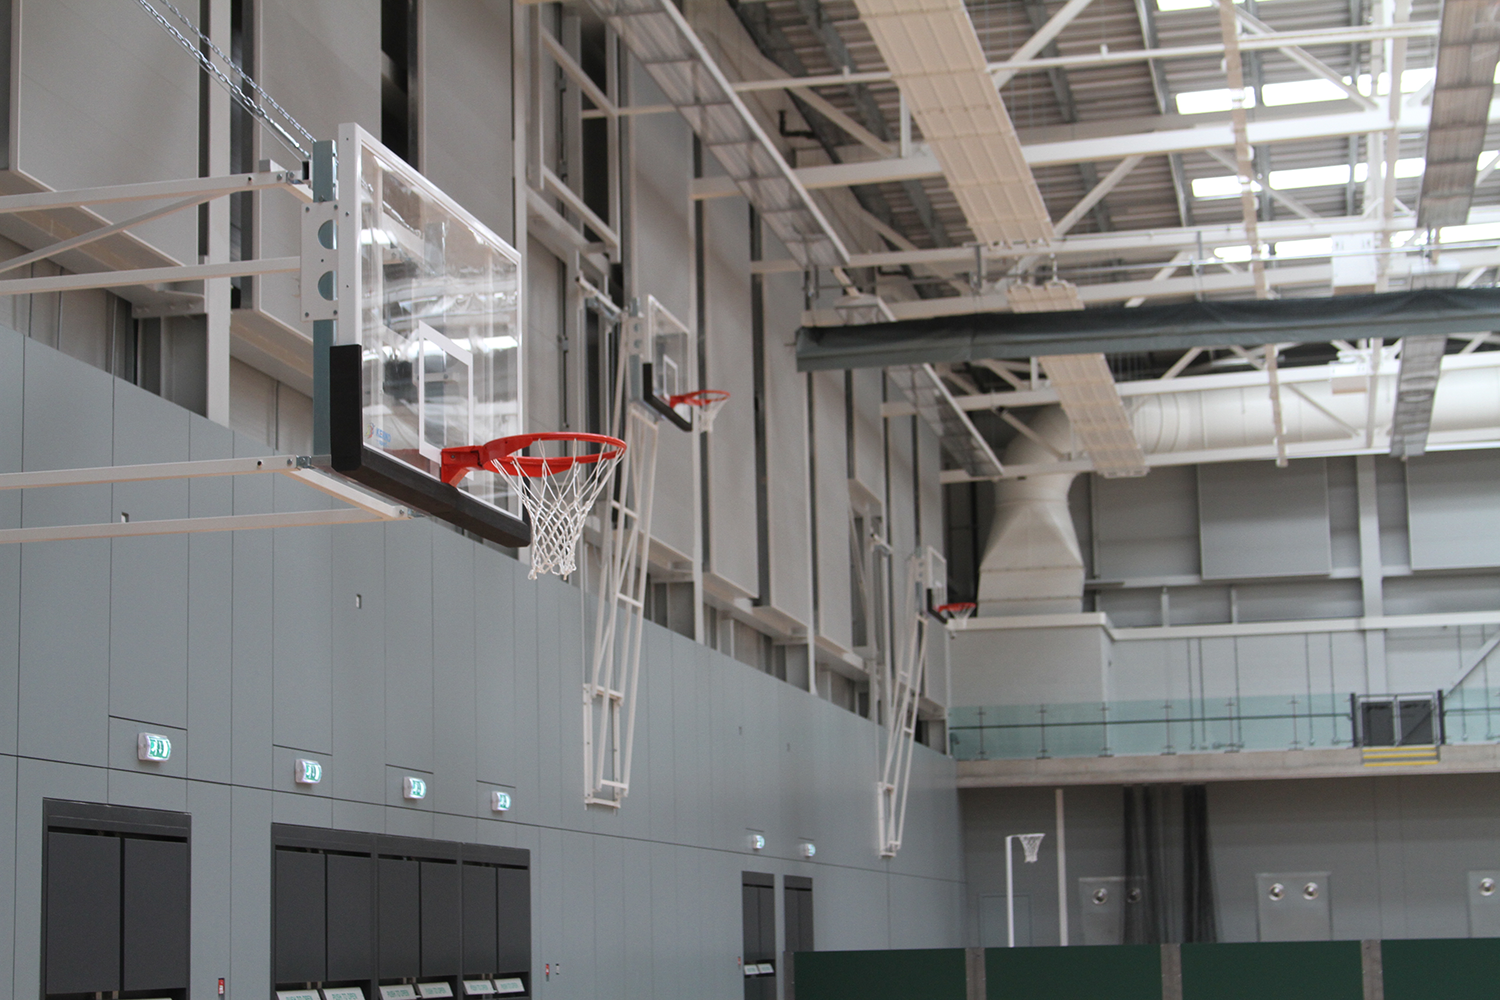 Emirates Arena Basketball Goals by Unisport